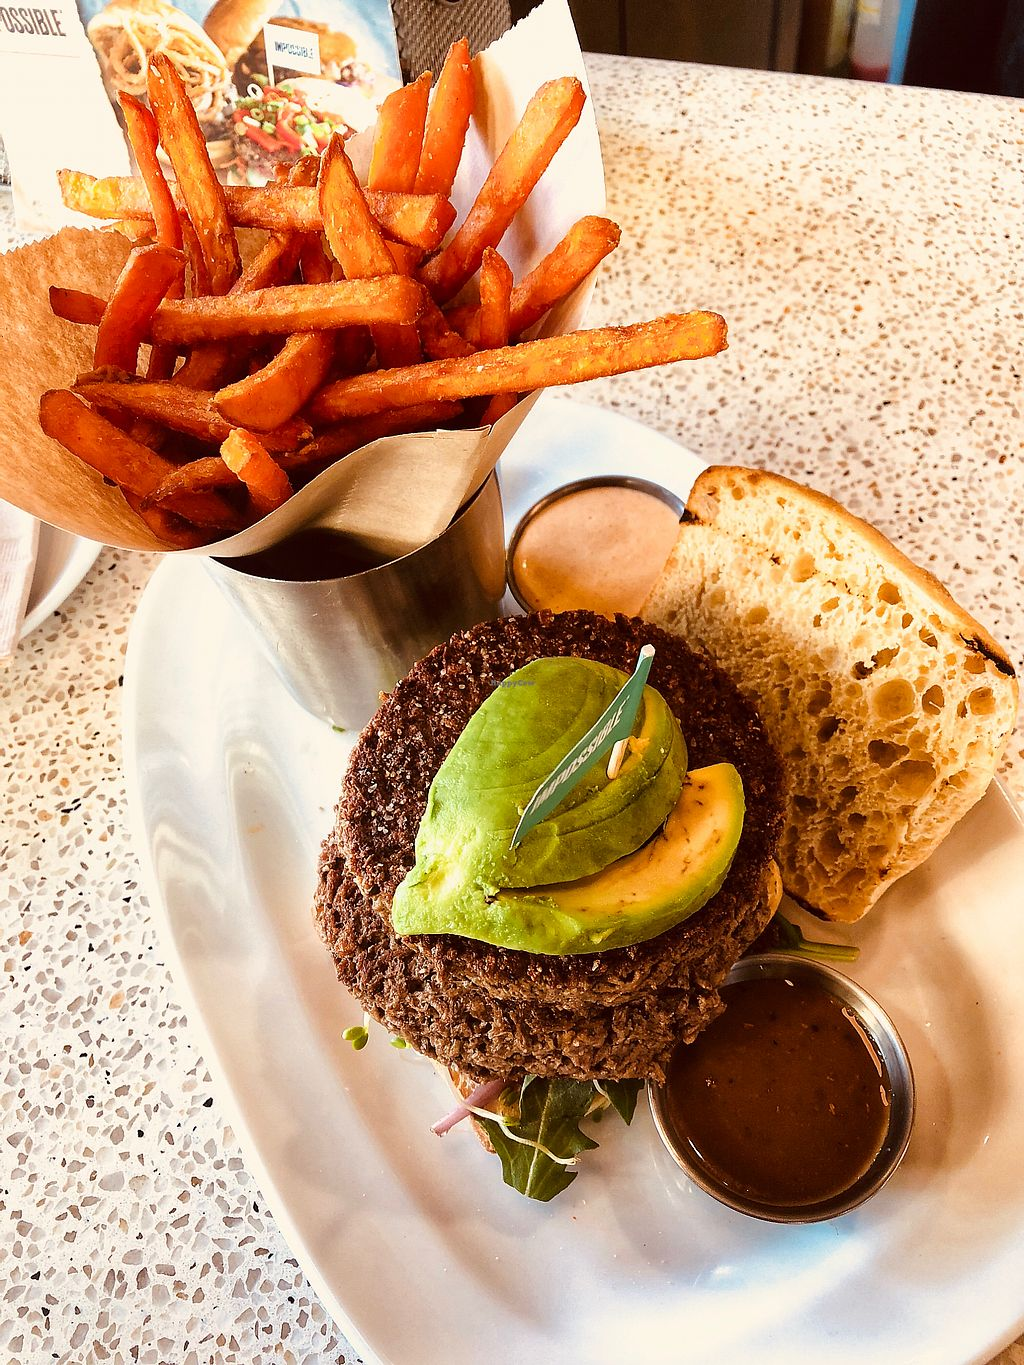 """Photo of The Counter  by <a href=""""/members/profile/teaneedz"""">teaneedz</a> <br/>The 1/2 lb Impossible Burger <br/> March 10, 2018  - <a href='/contact/abuse/image/111640/368662'>Report</a>"""